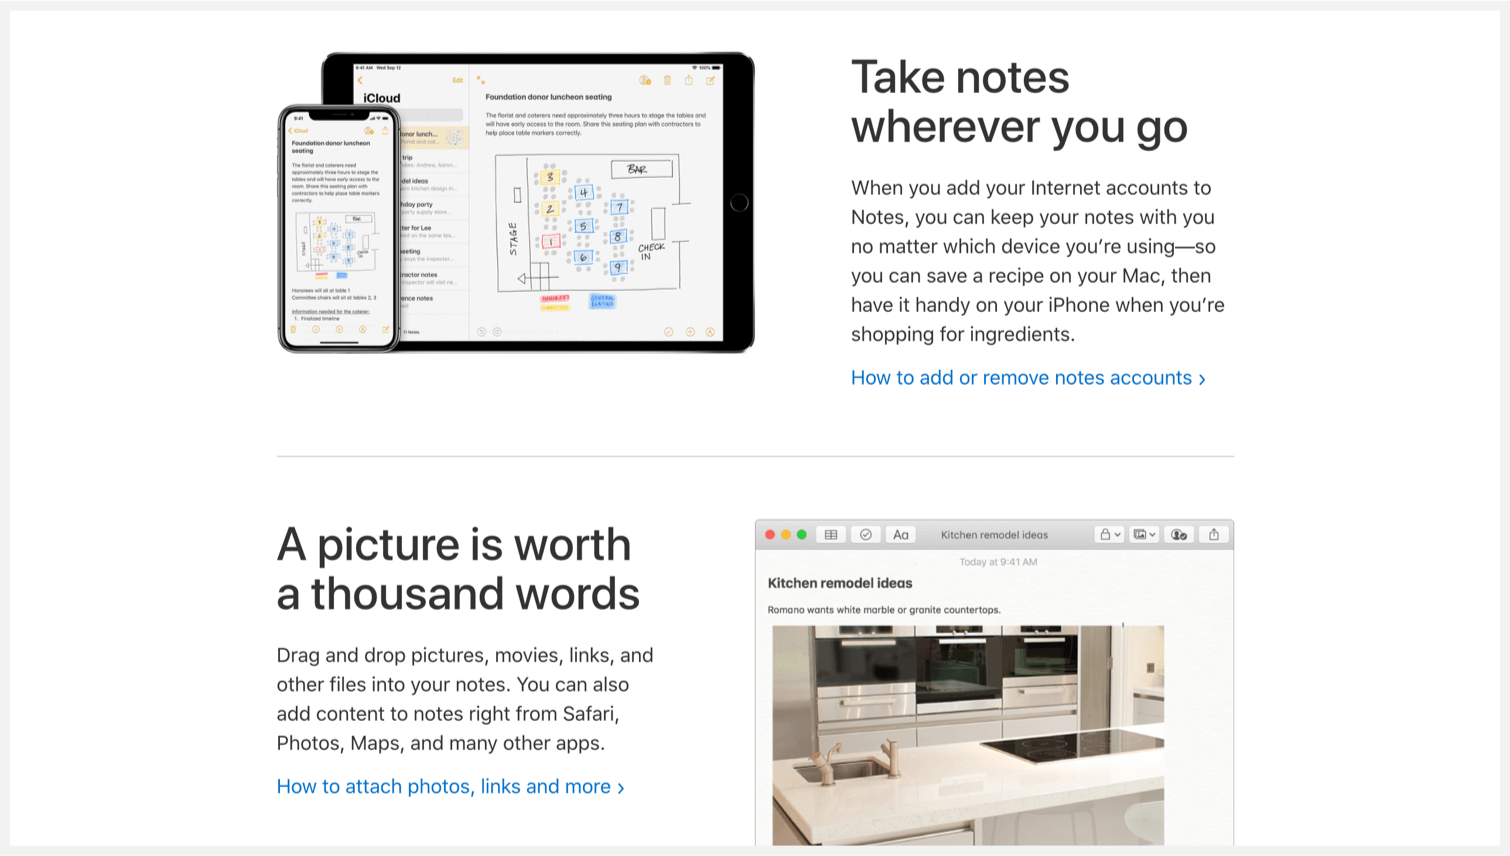 Apple Notes' webpage that lists the main features